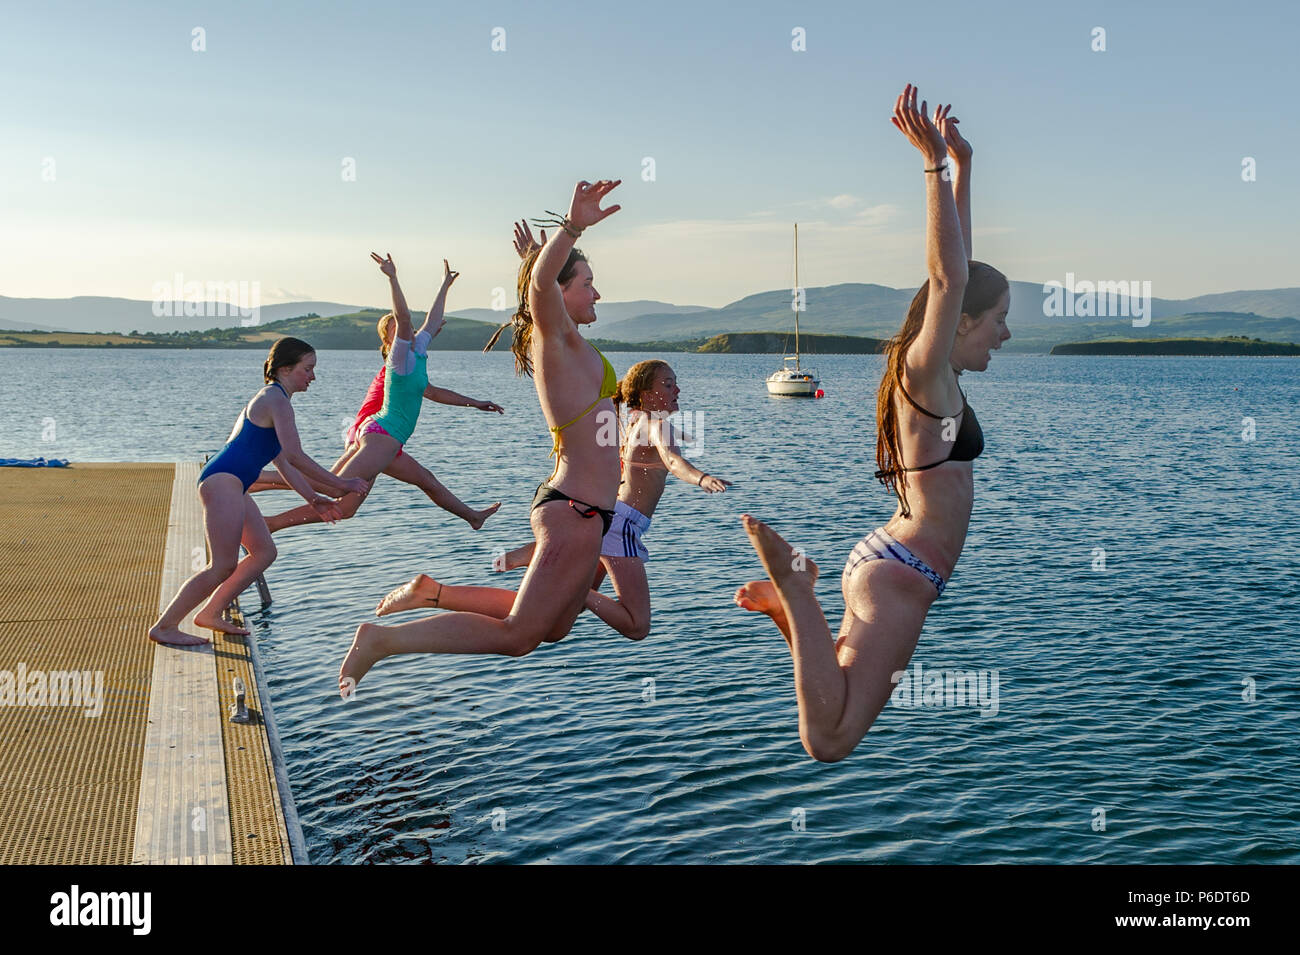 bantry-west-cork-ireland-29th-june-2018-after-a-scorchingly-hot-day-during-the-current-heatwave-a-group-of-young-girls-jump-into-the-sea-from-a-pontoon-as-the-sun-goes-down-in-bantry-the-rest-of-the-weekend-will-be-cooler-than-previous-days-with-rain-forecast-for-next-week-credit-andy-gibsonalamy-live-news-P6DT6D.jpg